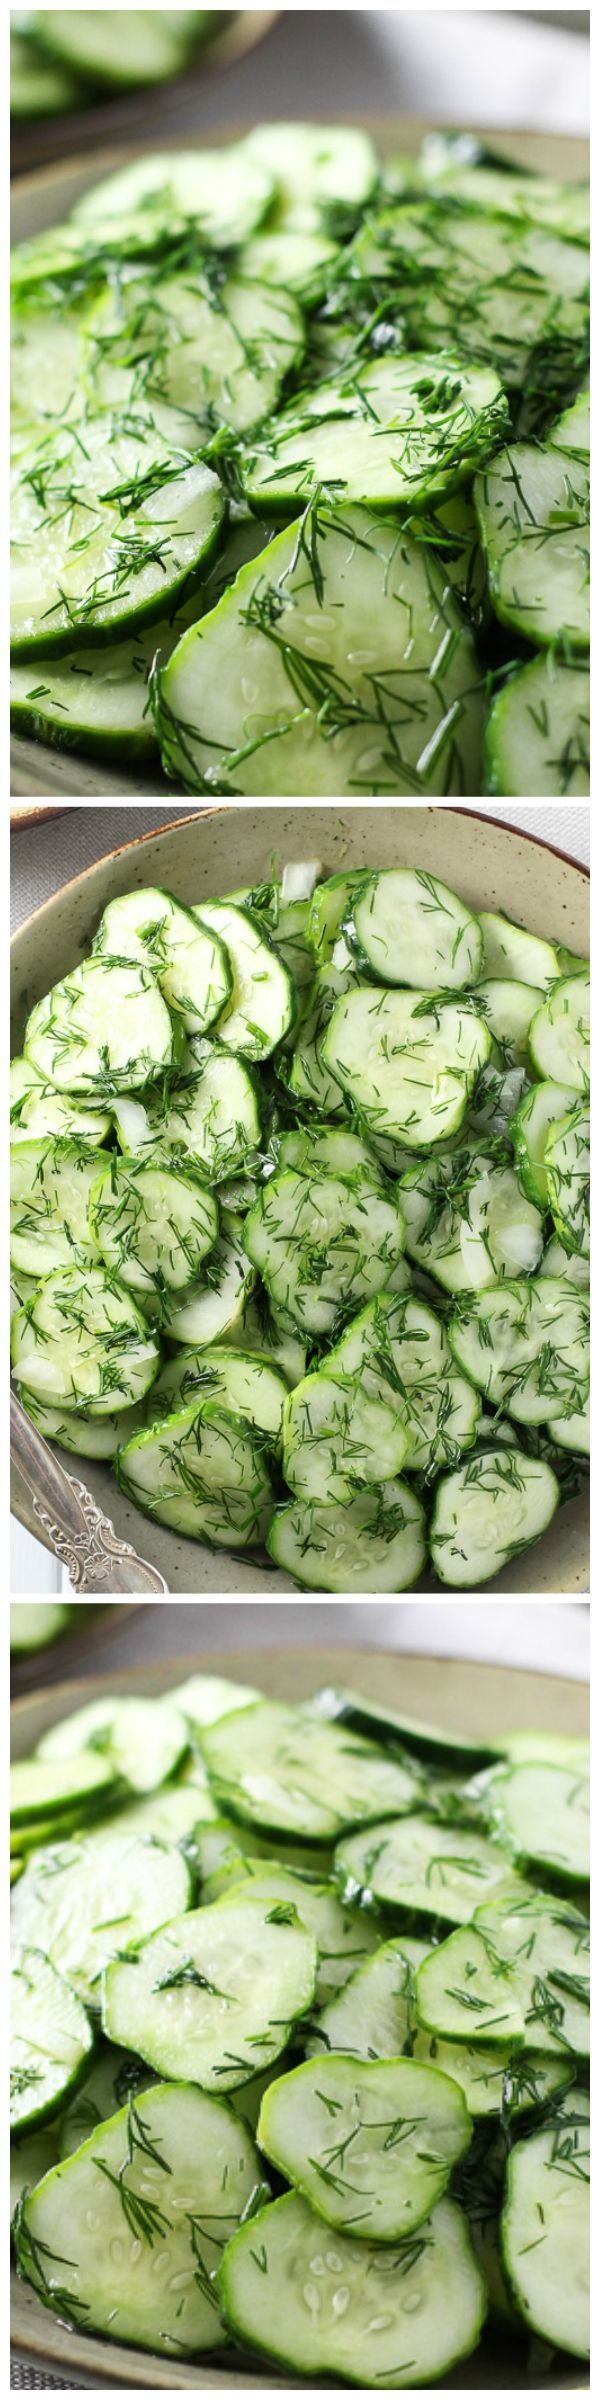 German Cucumber #Salad with Dill - This simple salad is nice and tart, super crunchy and refreshing. It's perfect for a family dinner or a party. The leftovers taste great too